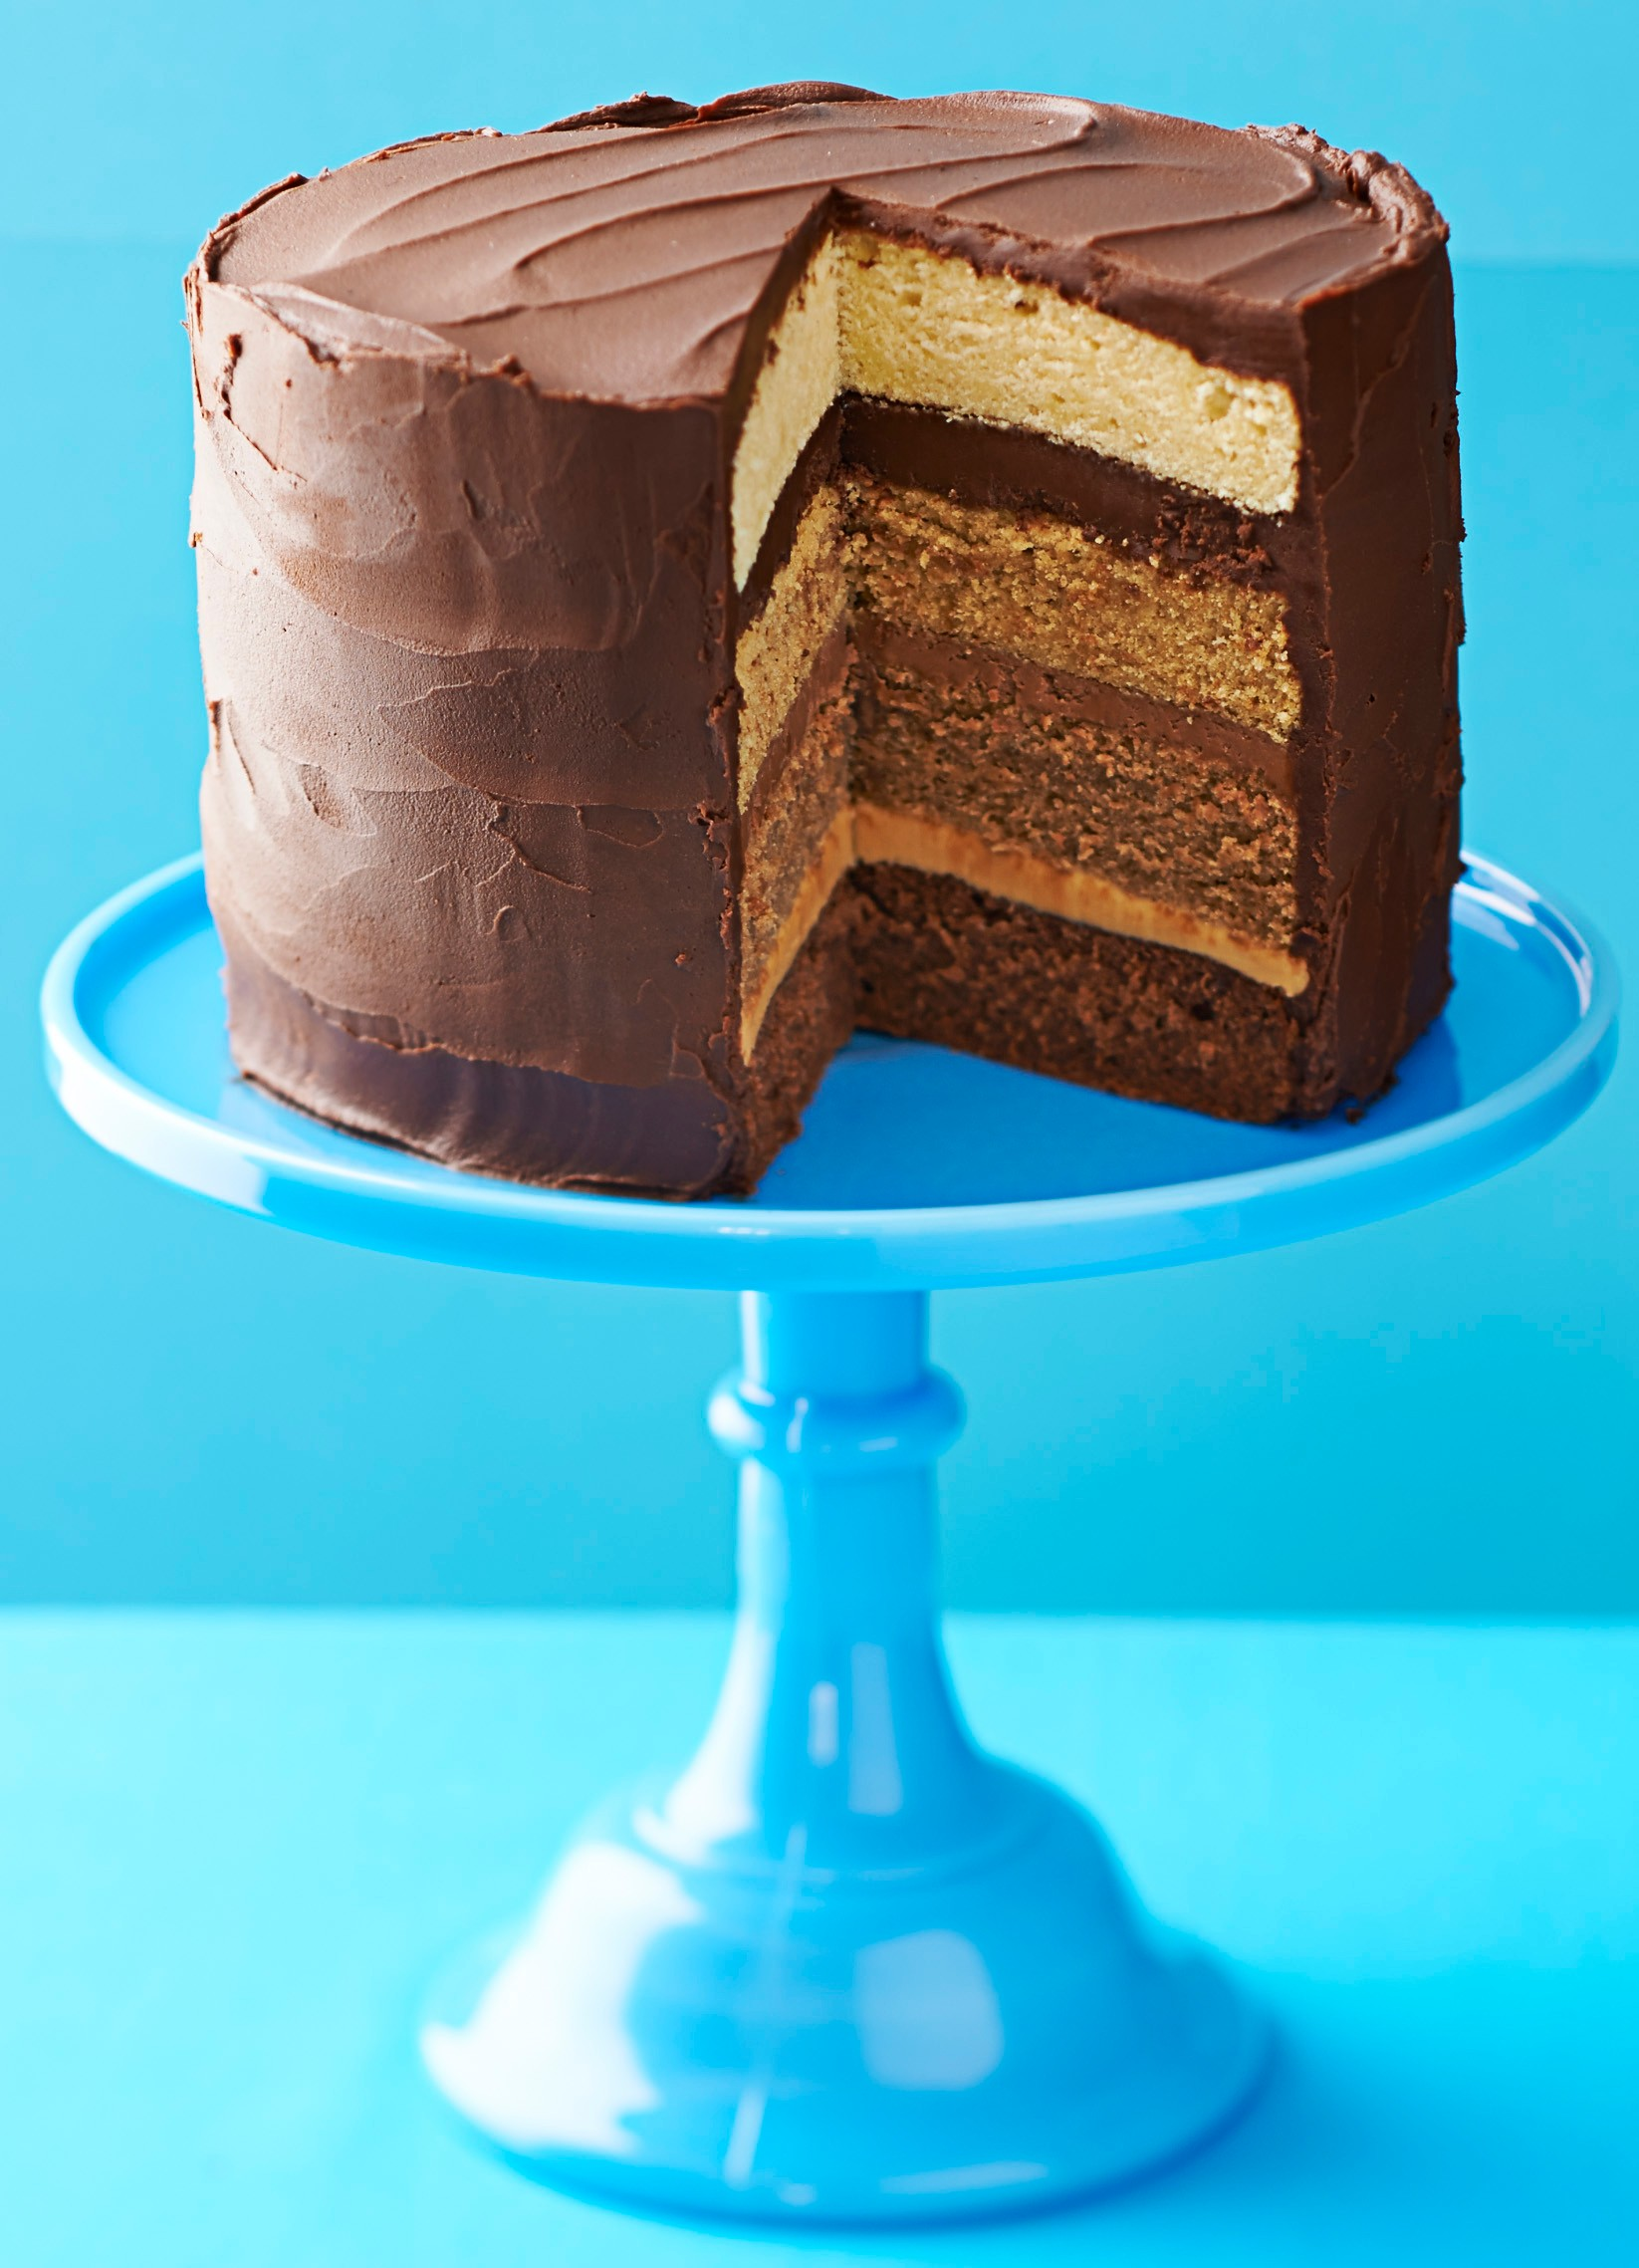 Chocolate Caramel Cake Recipe For Ombre Cake